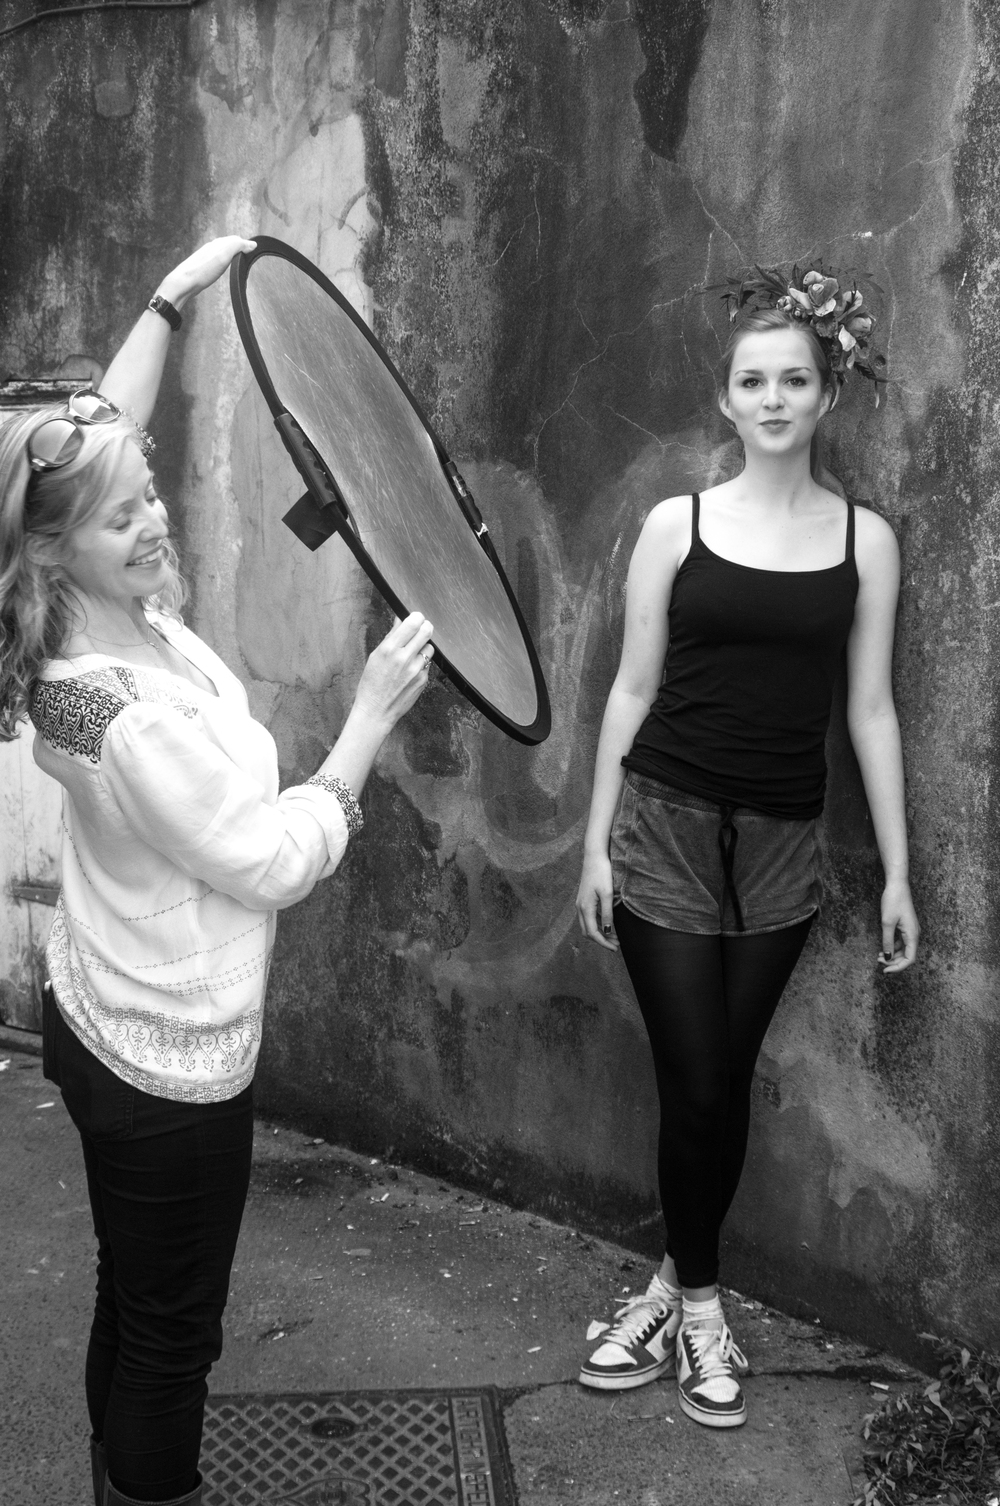 Rachel Skinner on photoshoot for Lomax and Skinner